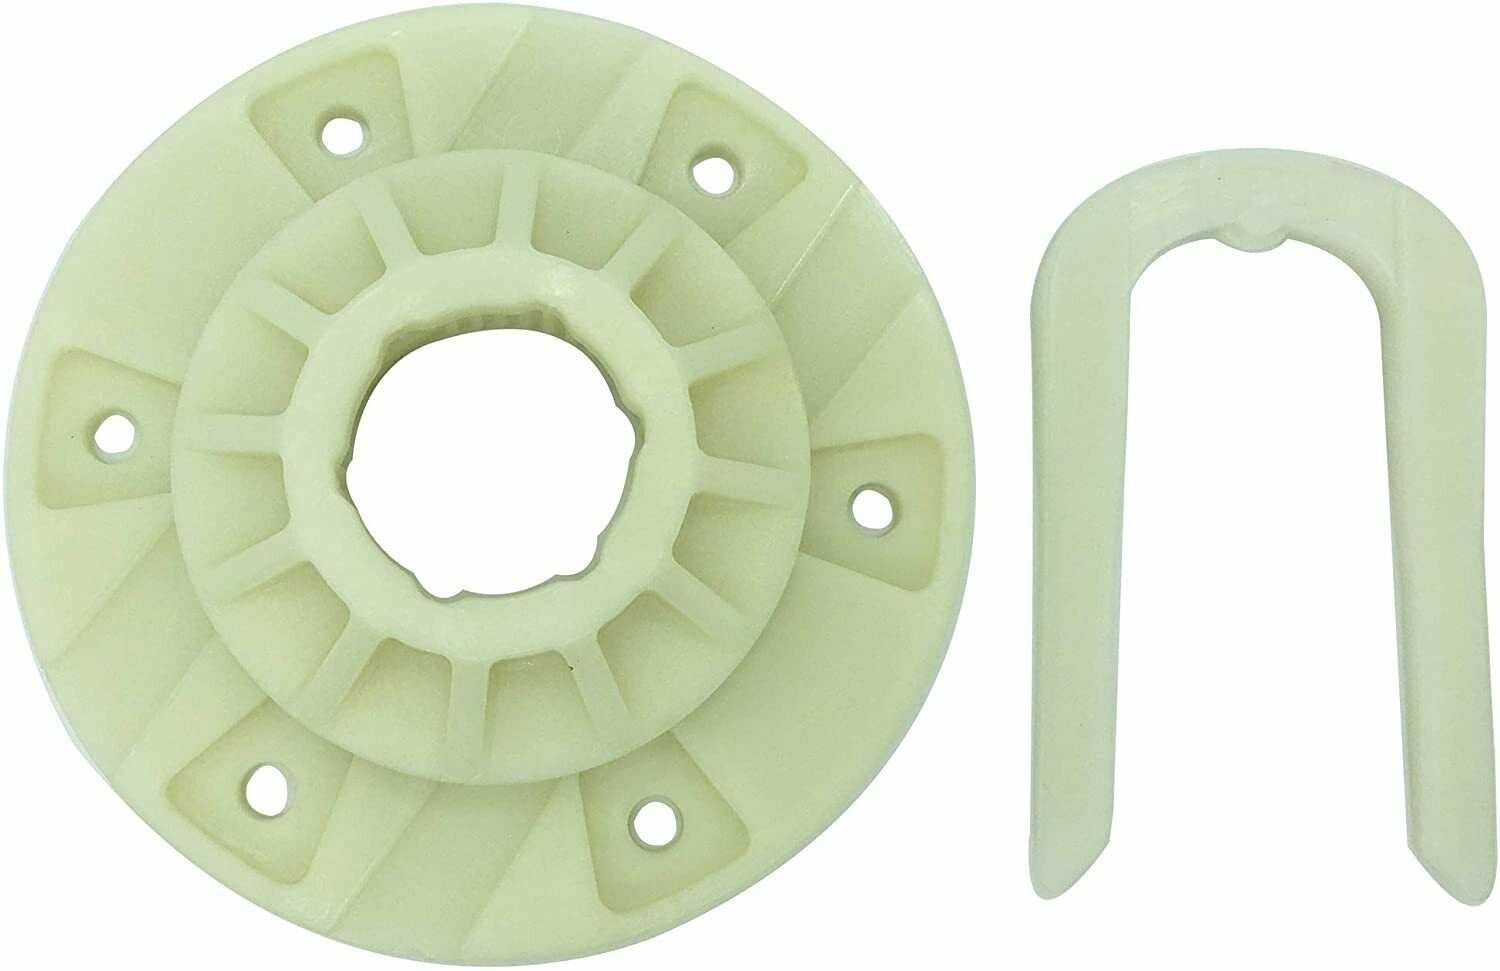 W10528947 Whirlpool Washer Drive Hub Kit for Maytag / Whirlp